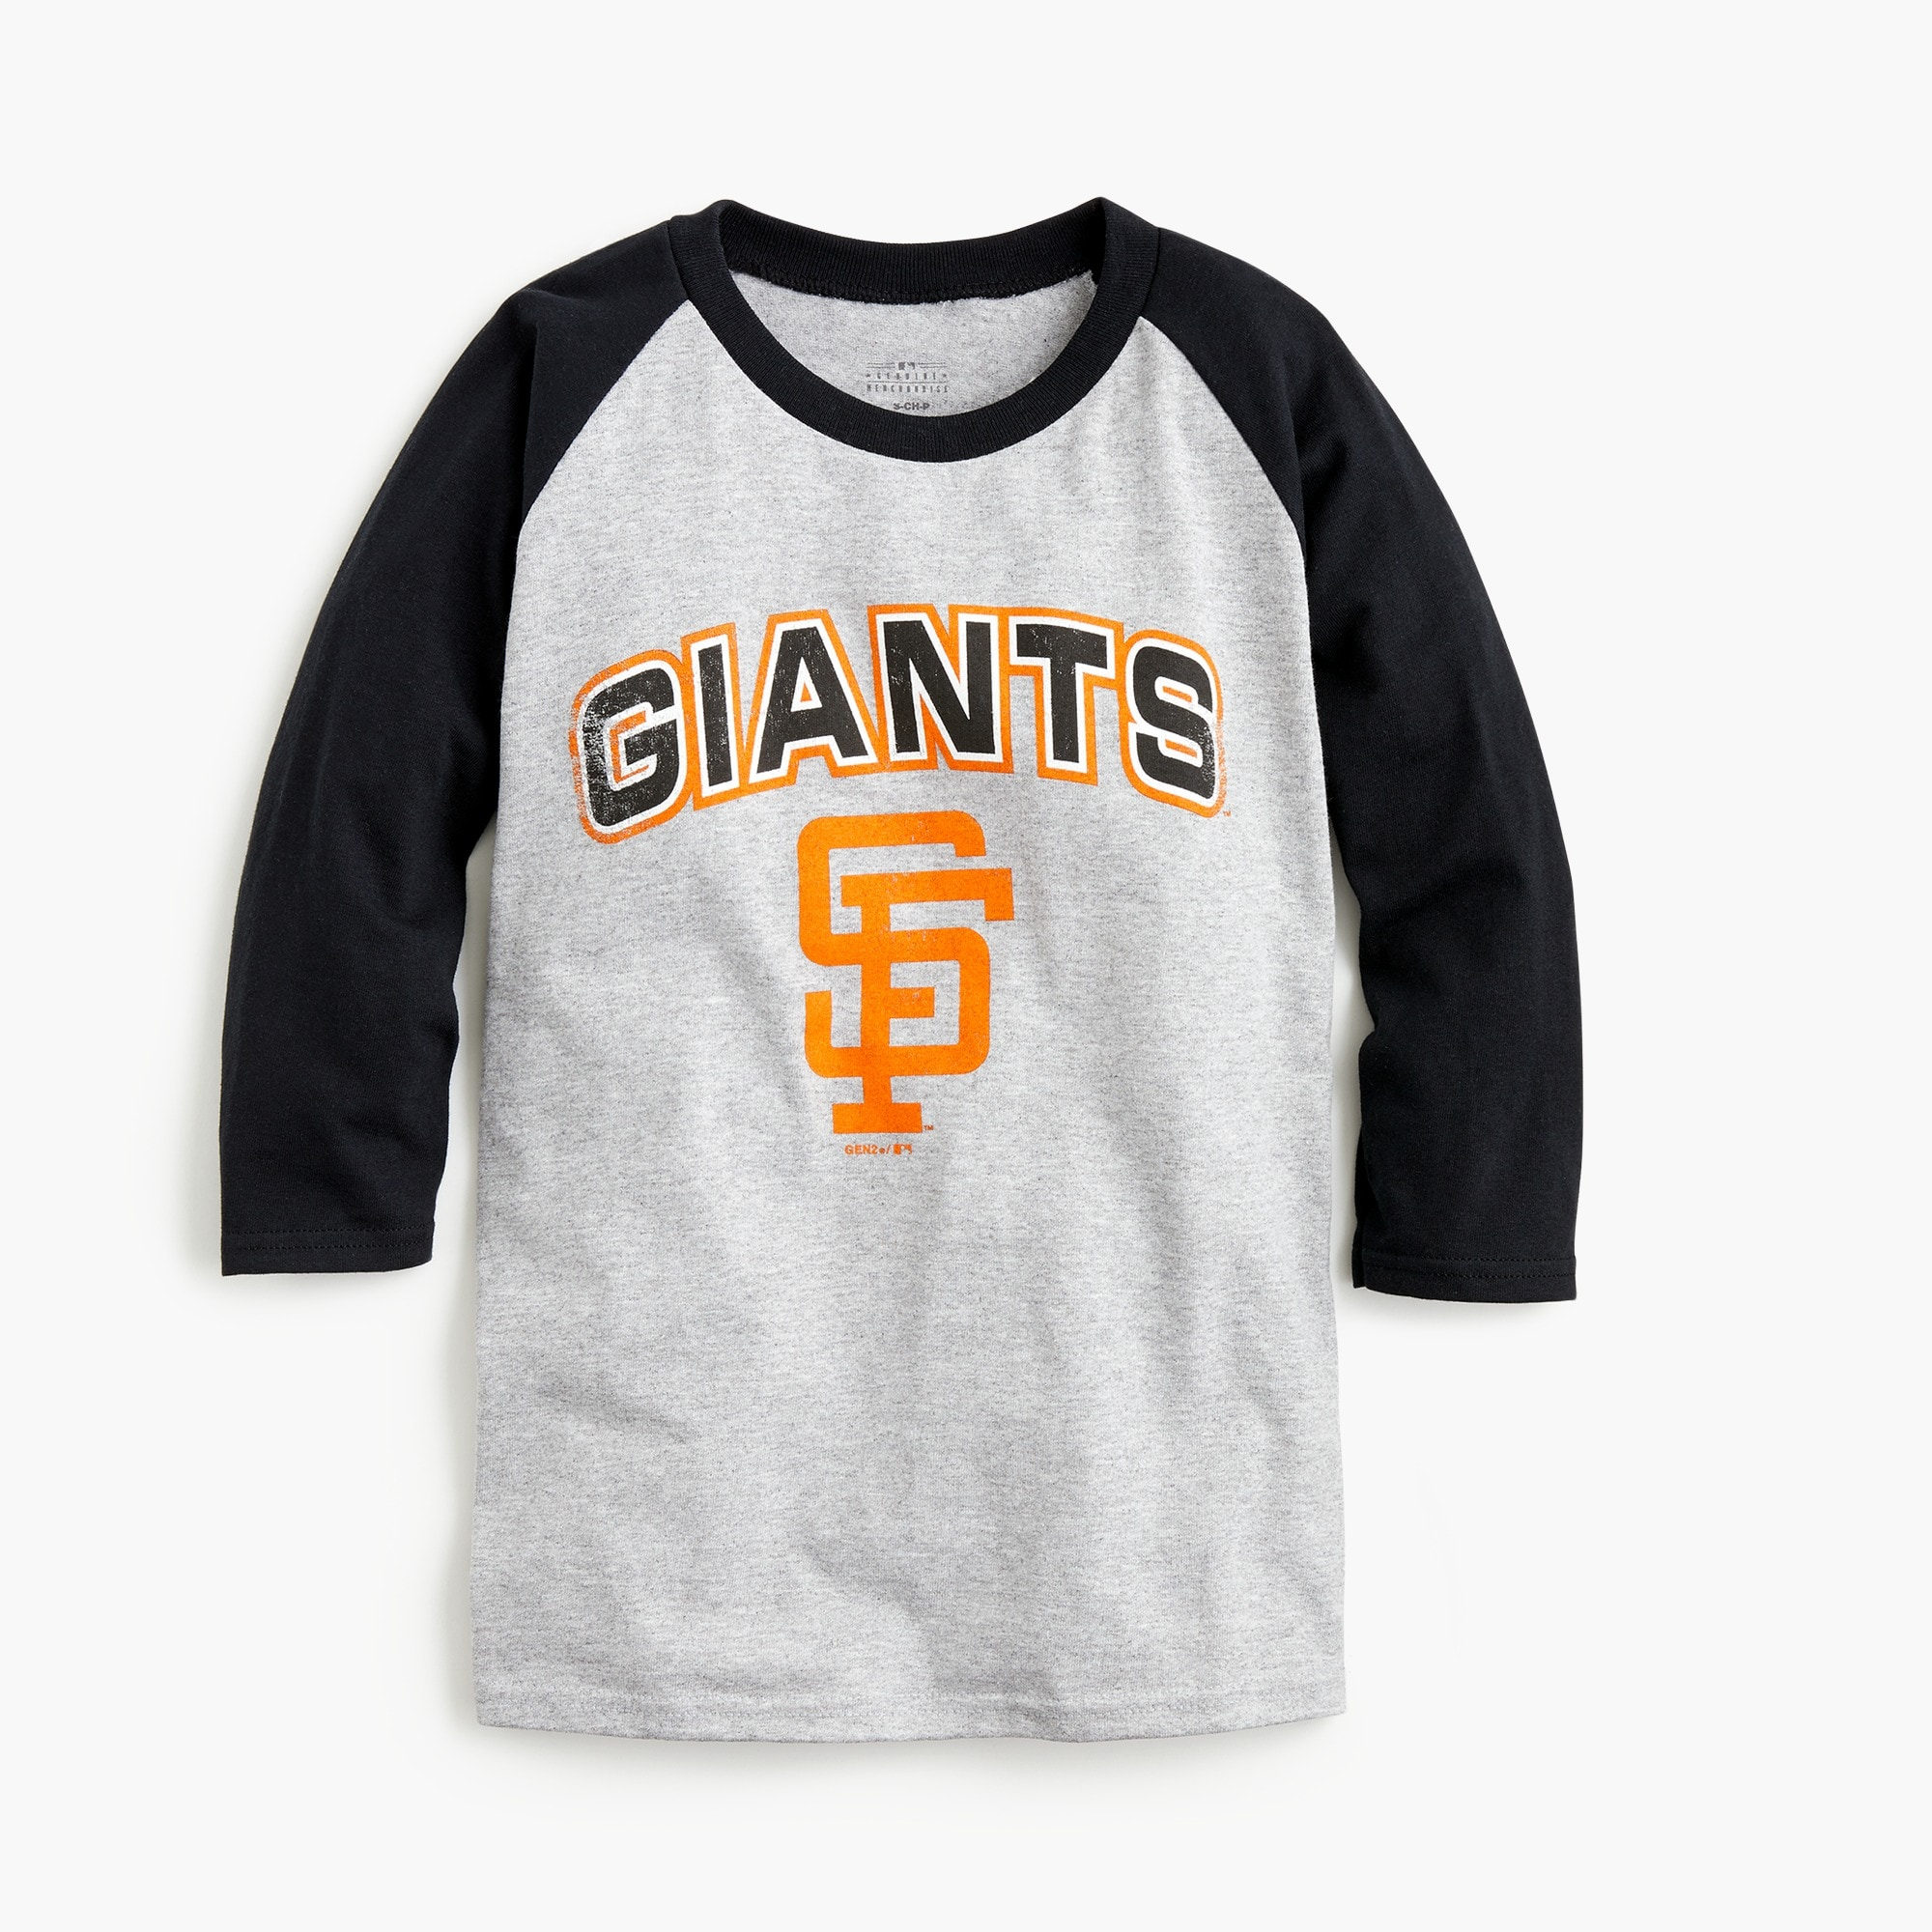 boys Kids' San Francisco Giants baseball T-shirt